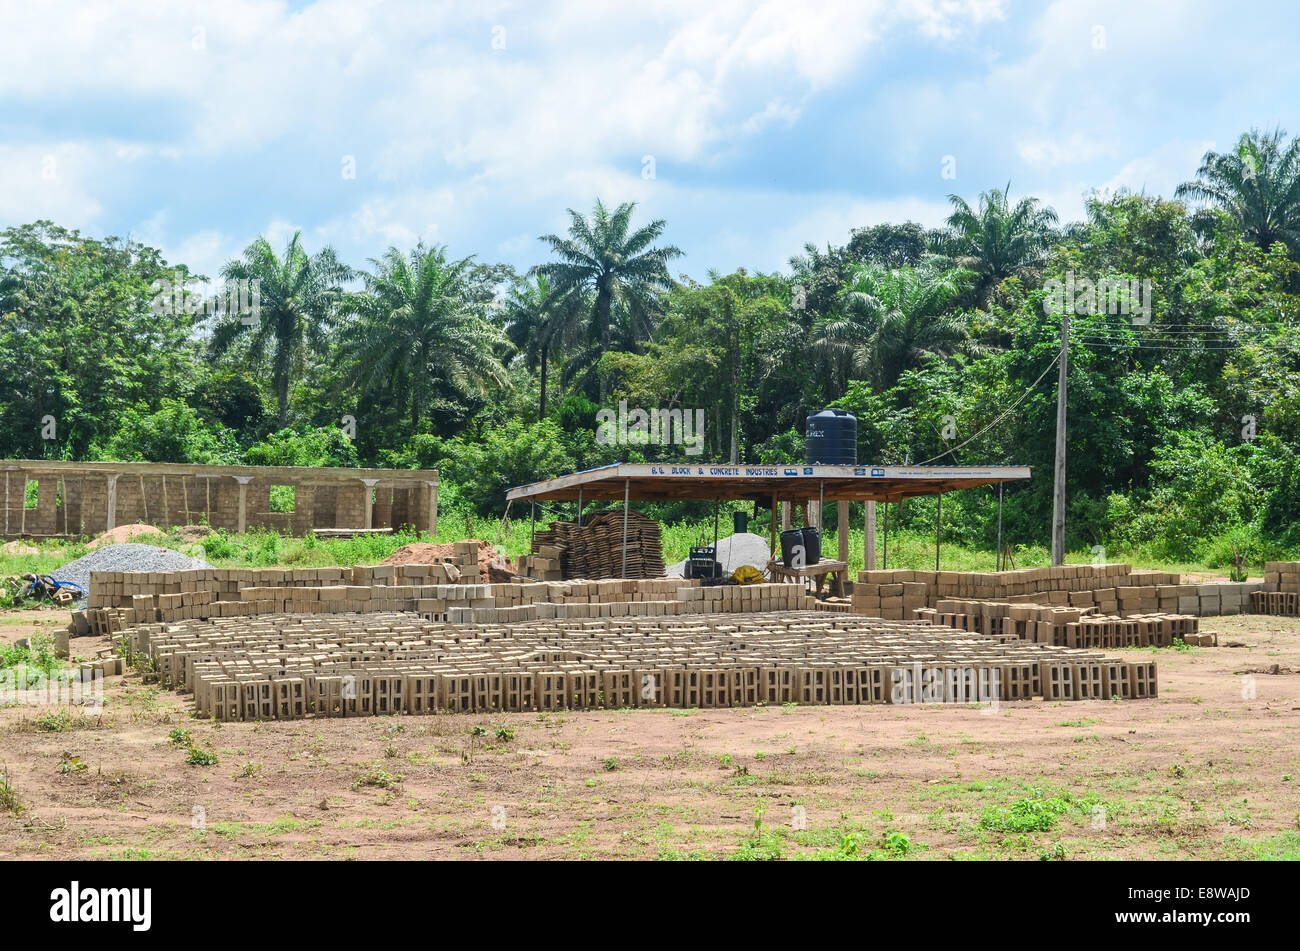 Brick making for construction in Nigeria - Stock Image